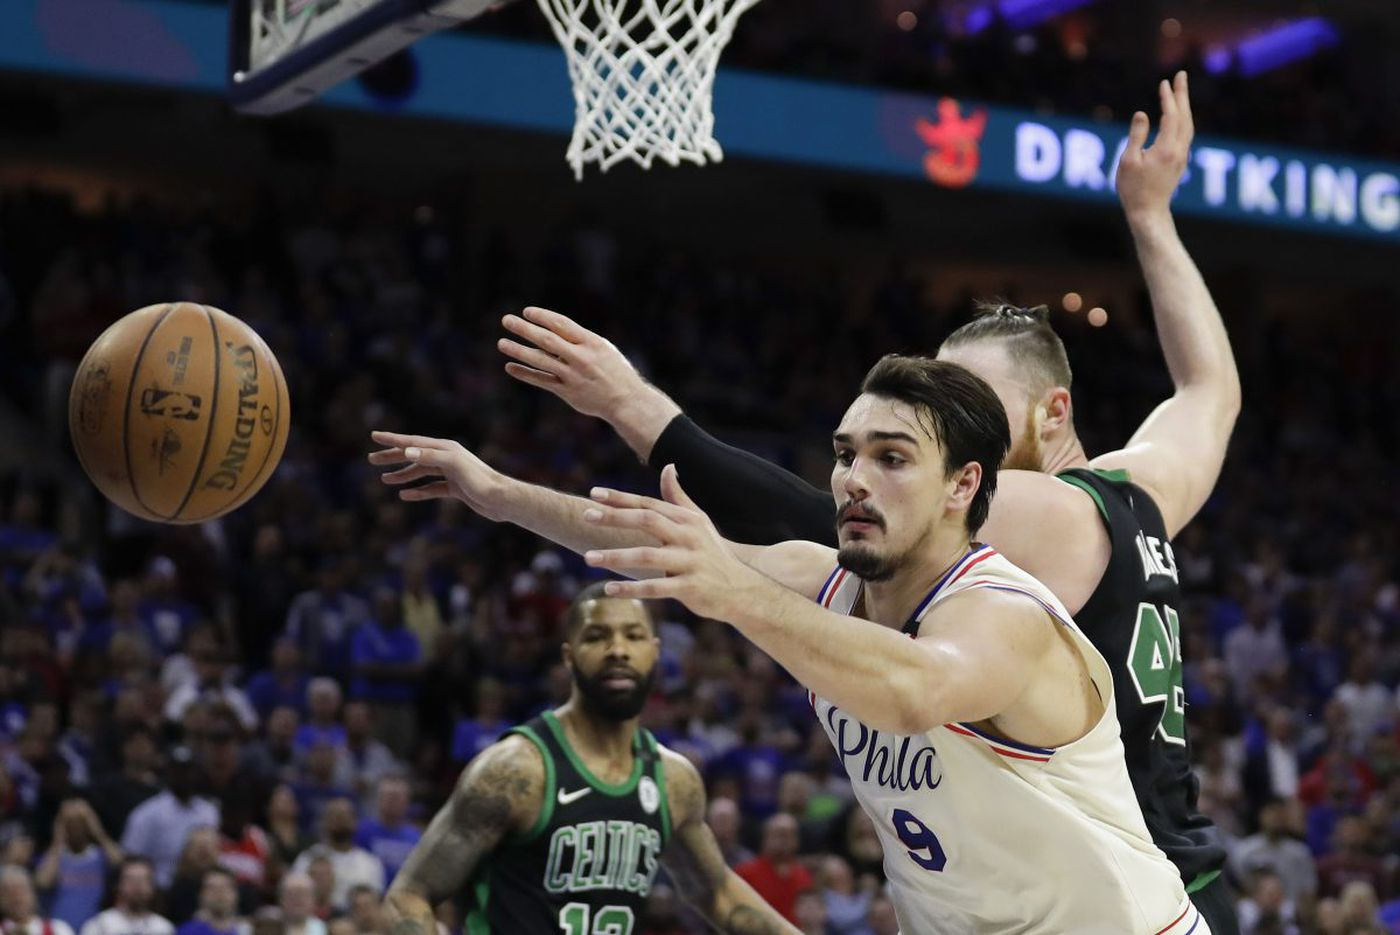 Sixers fall in 0-3 playoff hole after losing to Celtics 101-98 in overtime